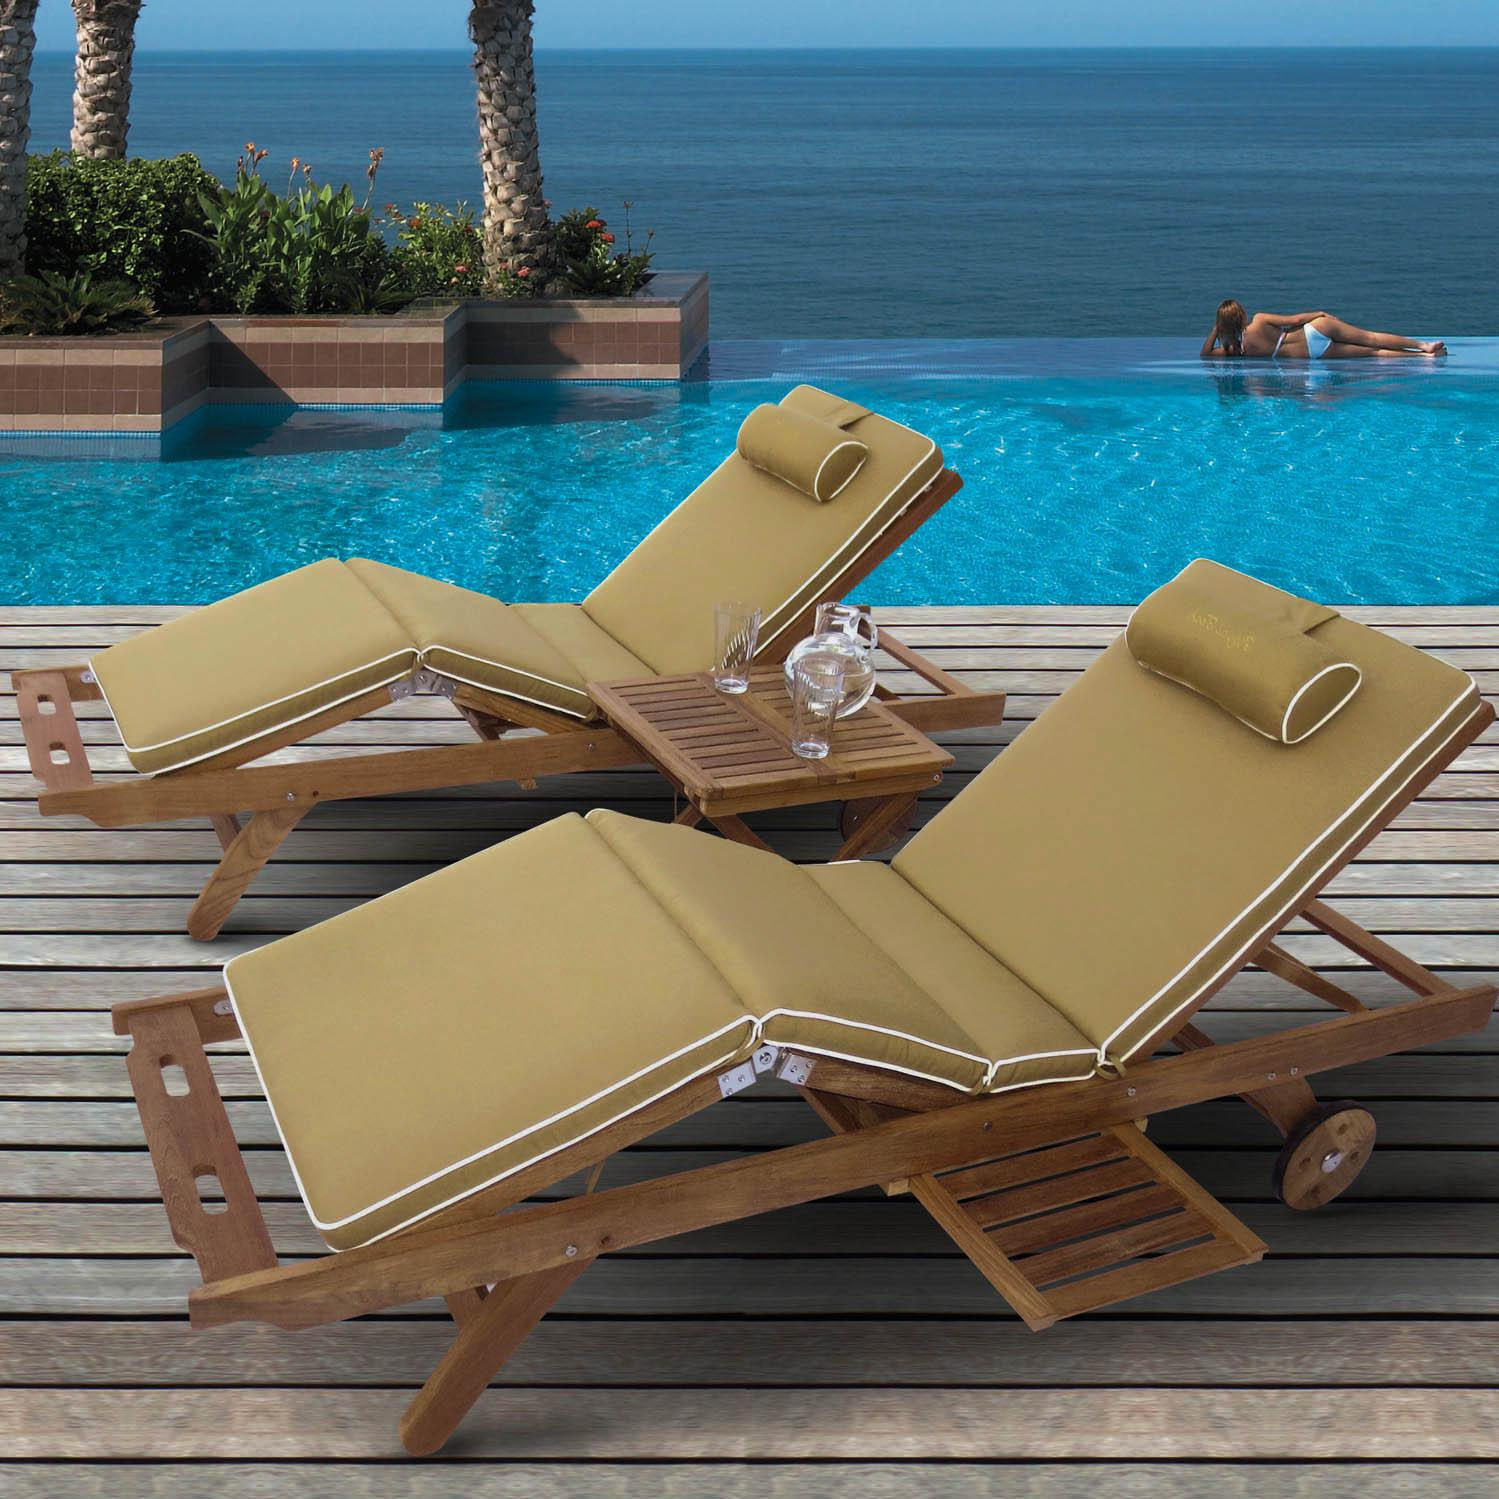 Teak Chaise Lounge Chairs Royal Teak Collection Sun Bed Chaise Lounge 2 Person Teak Chaise Lounge Set